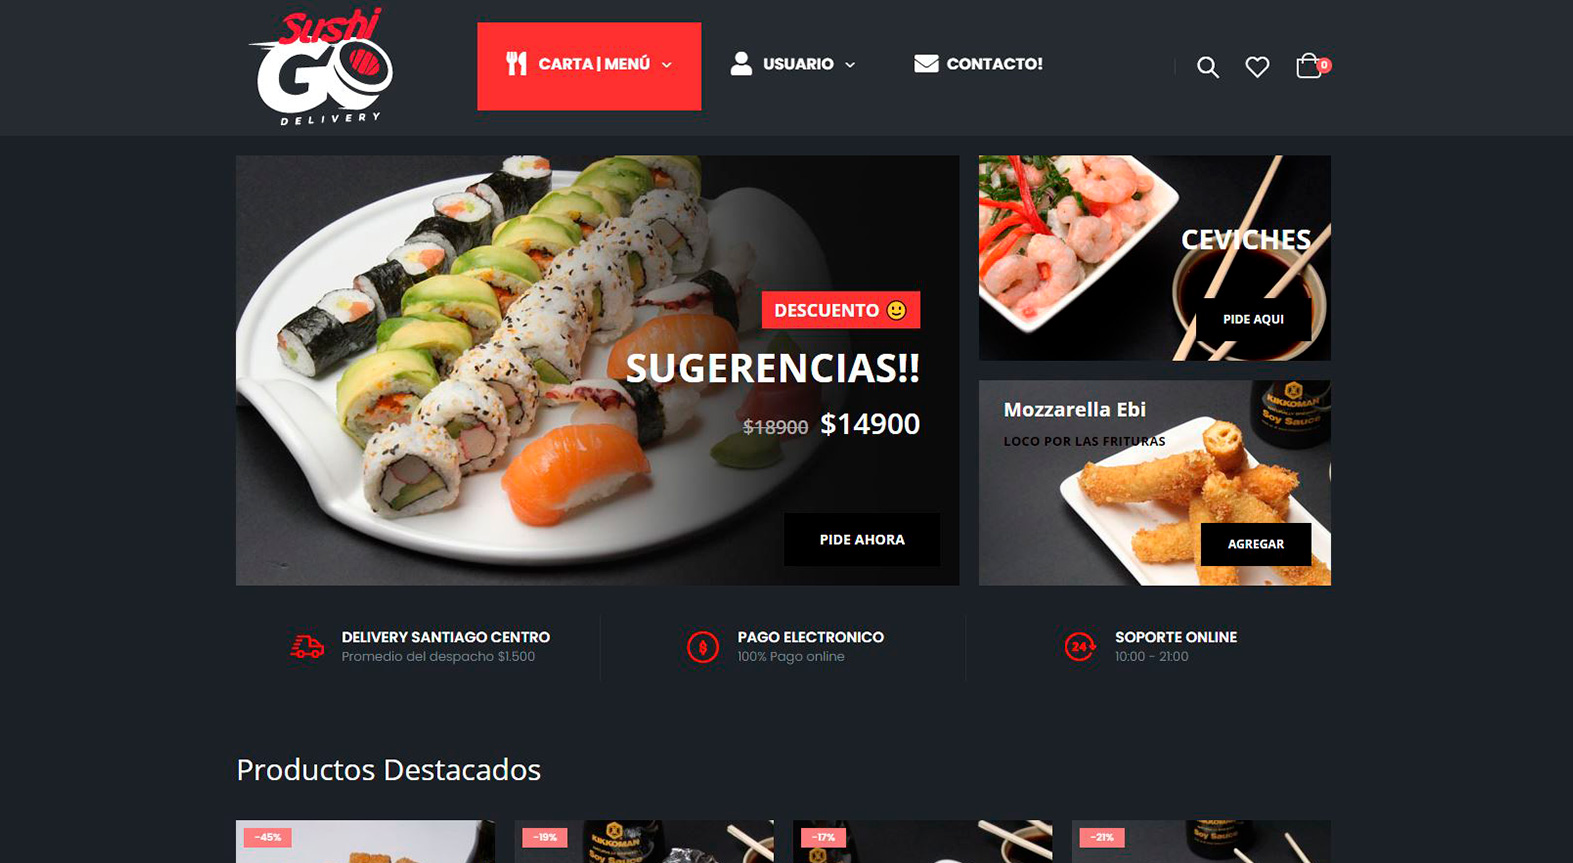 SushiGo E-Commerce